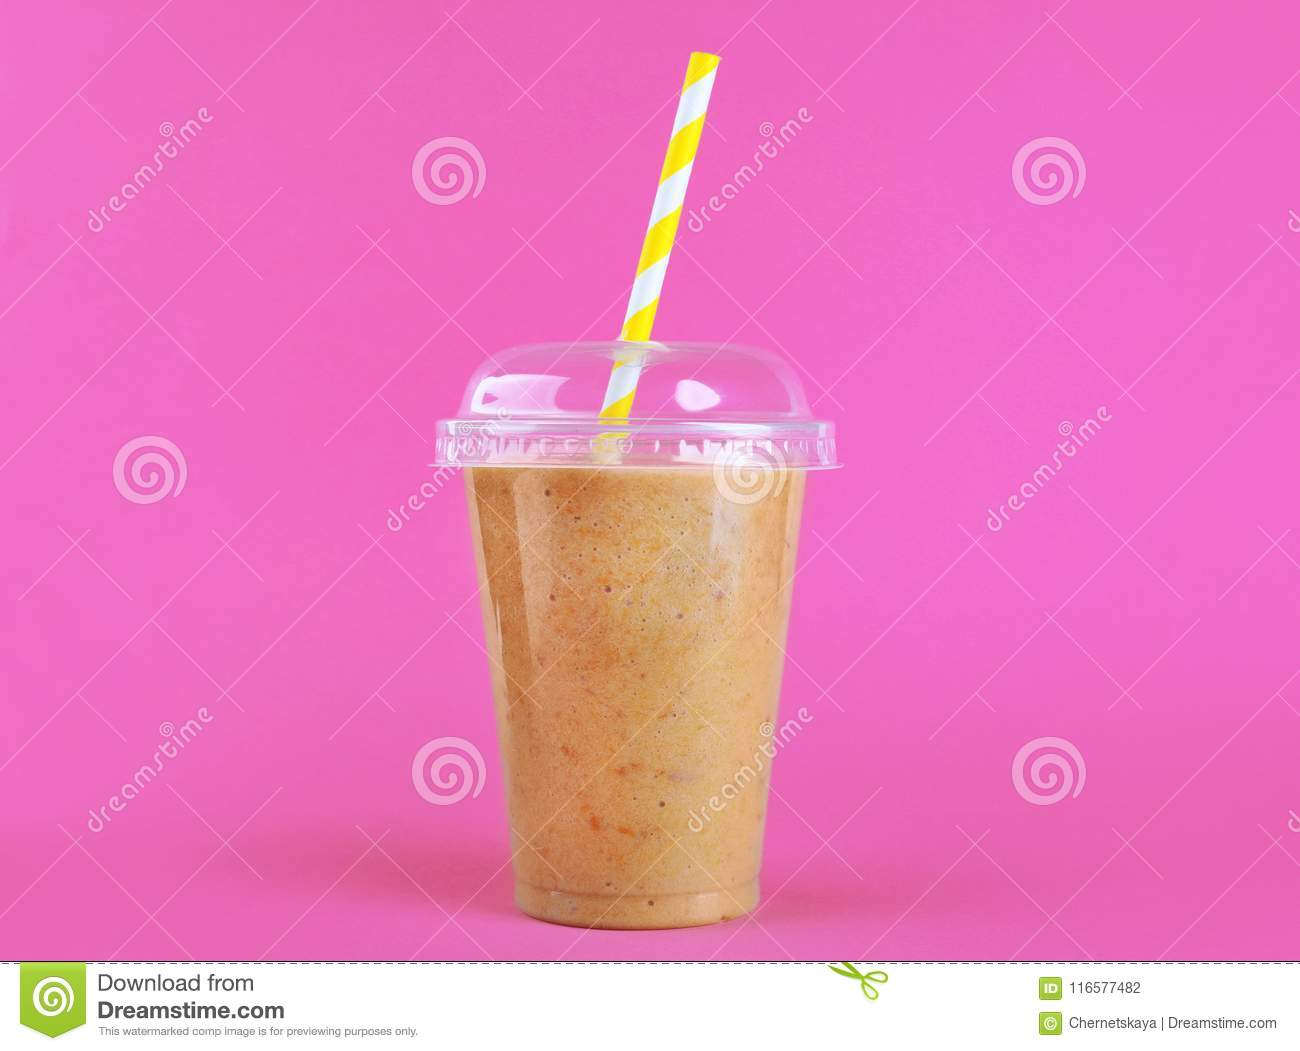 Tasty peach milkshake in plastic cup